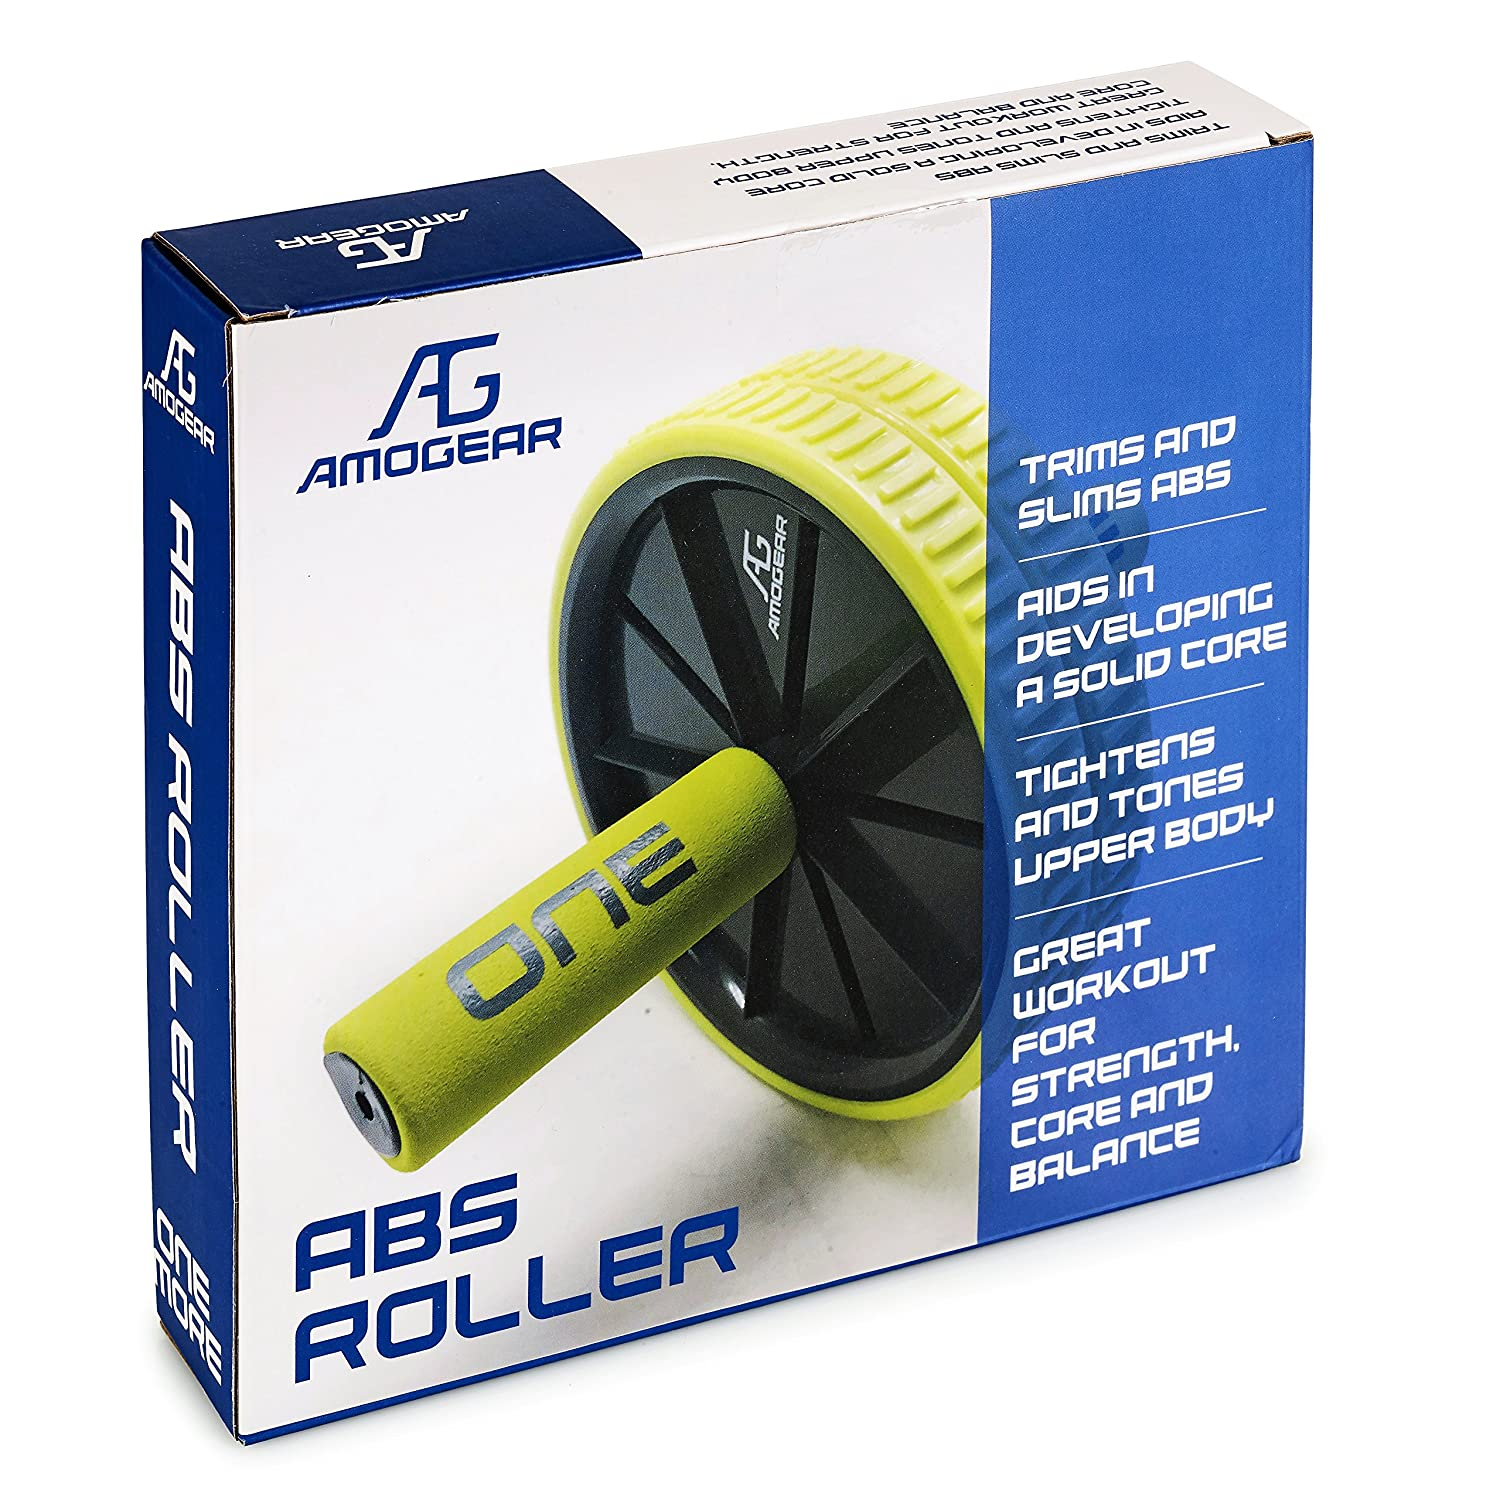 Amogear AB Roller is perfect for Strength Training /& Other Core Exercises